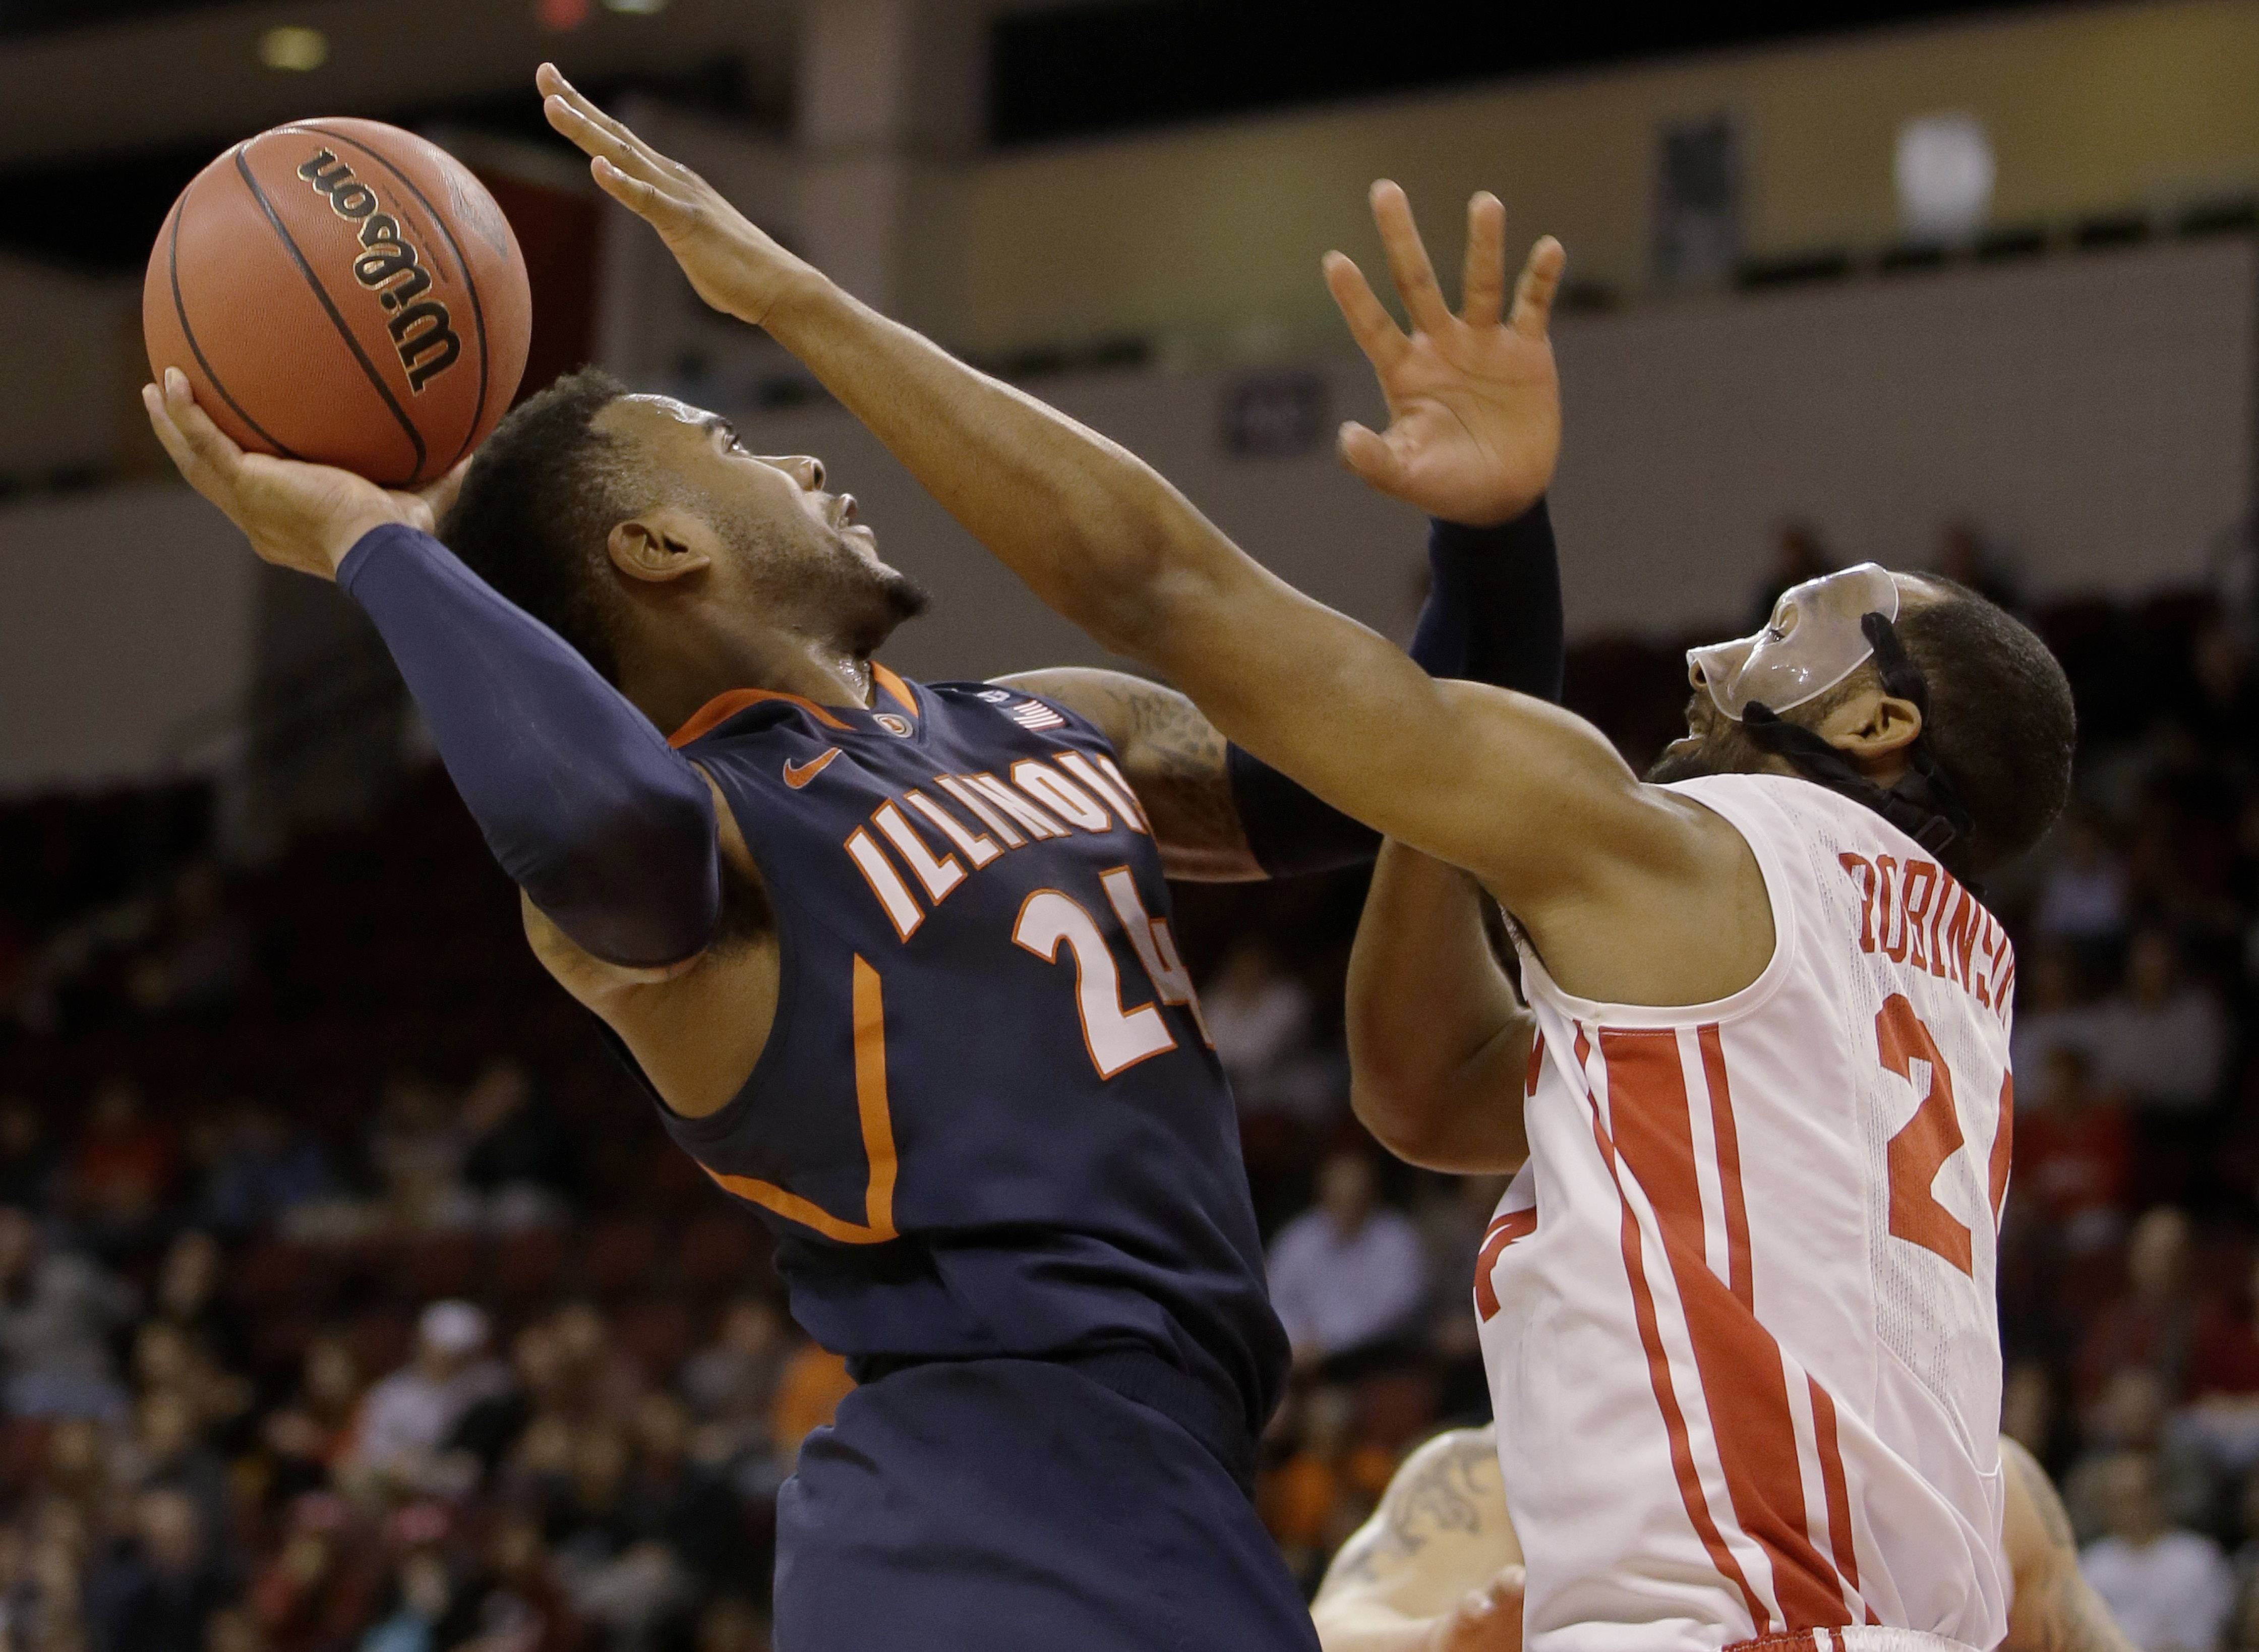 Illinois guard Rayvonte Rice (24) takes the ball to the hoop against Boston University forward Travis Robinson (24)during the second half of their NCAA mens NIT college basketball game Wednesday in Boston. Illinois defeated Boston University 66-62 in a come-from-behind victory late in the second half advancing to the second round of the NIT Tournament.